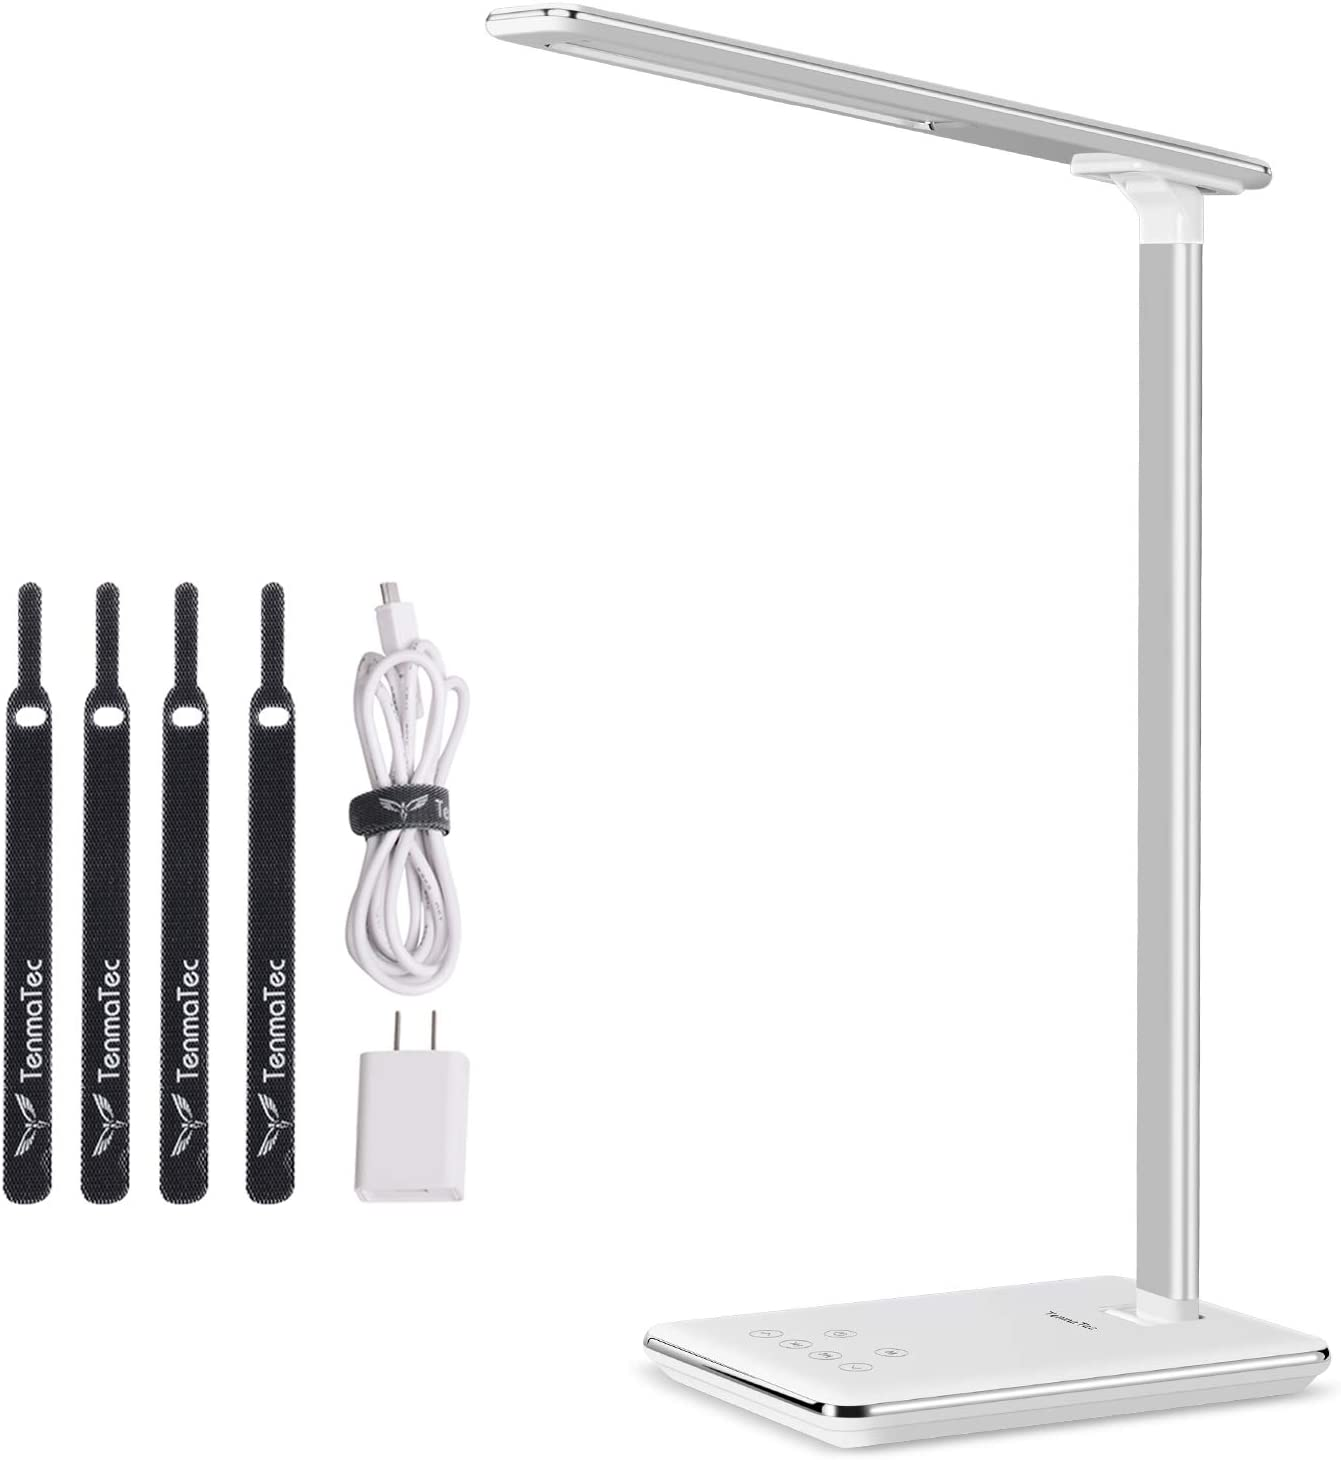 TenmaTec White Desk Lamp Computer Desk Lamps Side Luminescence Technology, USB Charging Port, 1 or 2 Hour Auto Timer,4 Lighting Modes with 6 Brightness Levels Piano White Finish Reading Light